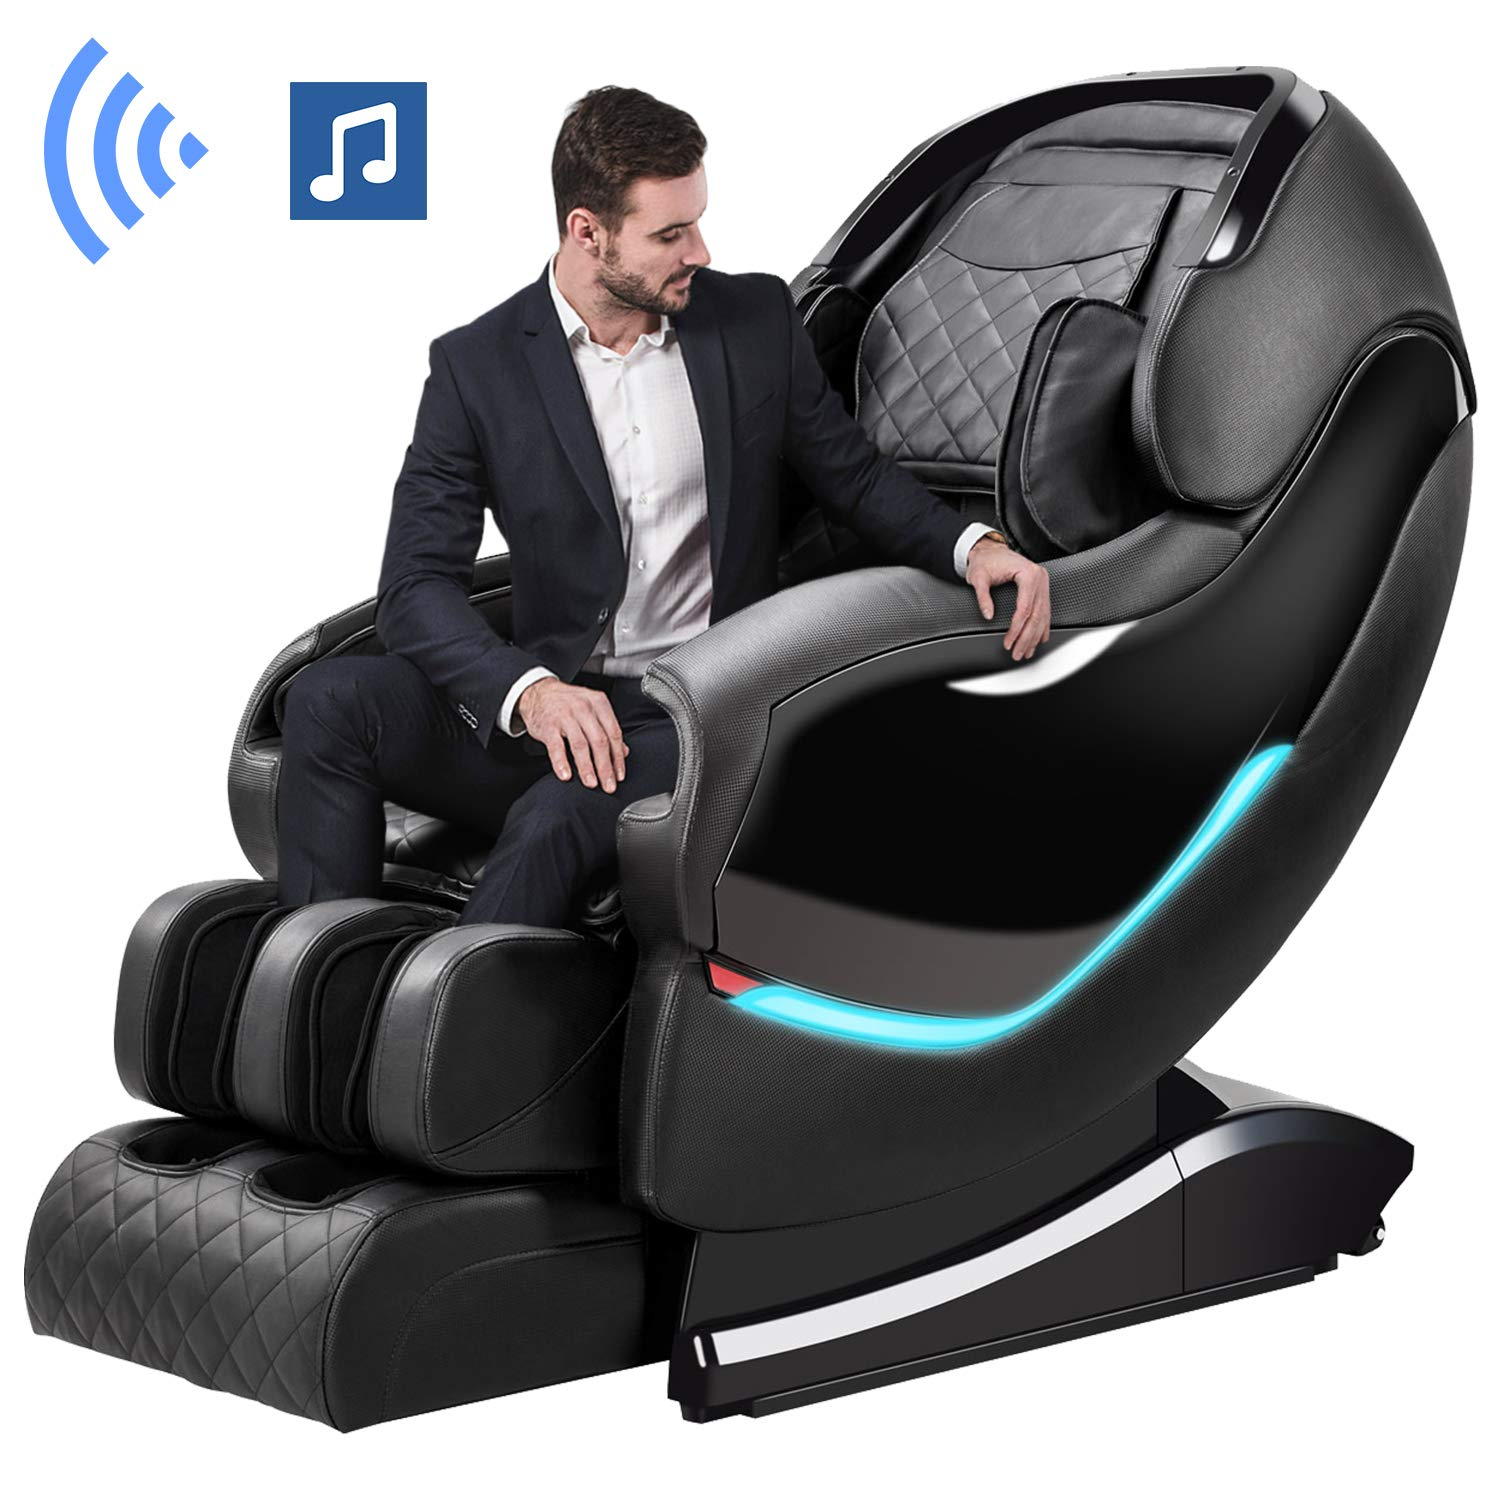 Massage Chair by OOTORI,3D SL-Track Thai Yoga Stretching Zero Gravity Massage Chair,Full Body Shiatsu Massage Chairs Recliner with Tapping, Heating and Foot Roller Massager (Black) by OOTORI